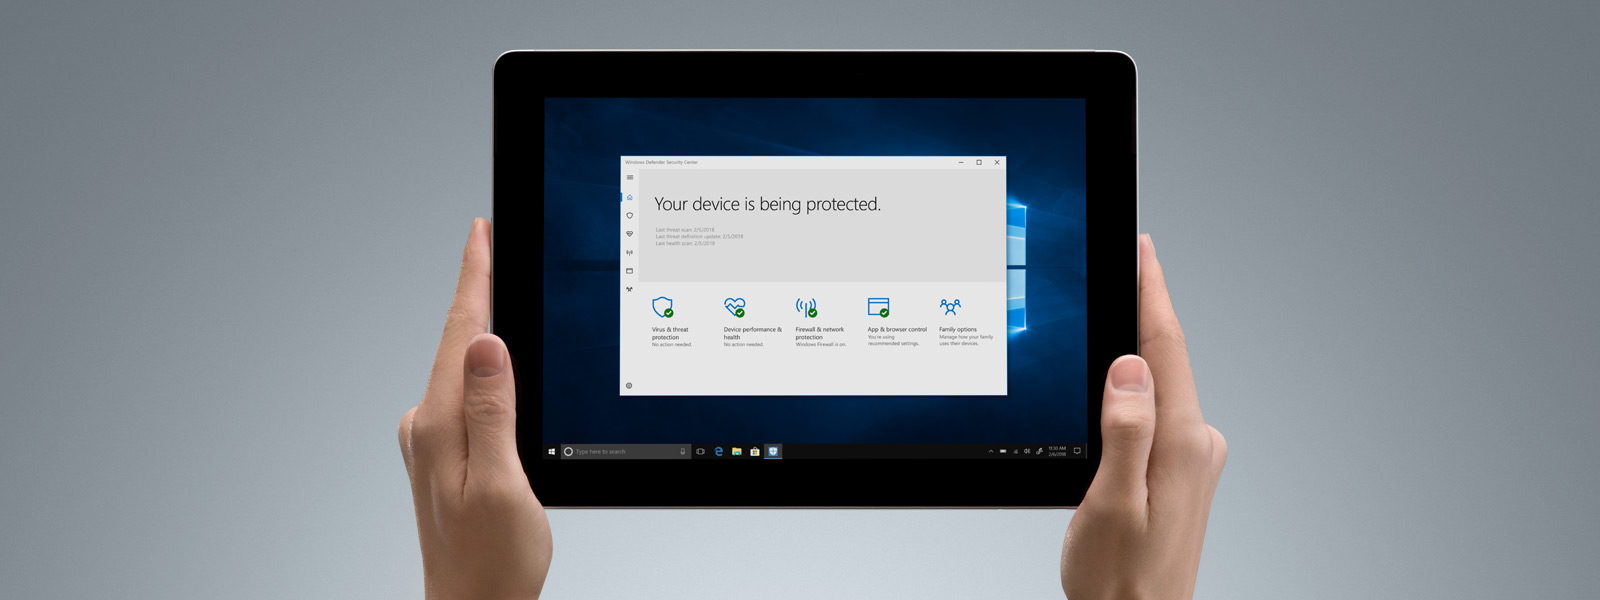 Surface Go held as a tablet with Windows Defender